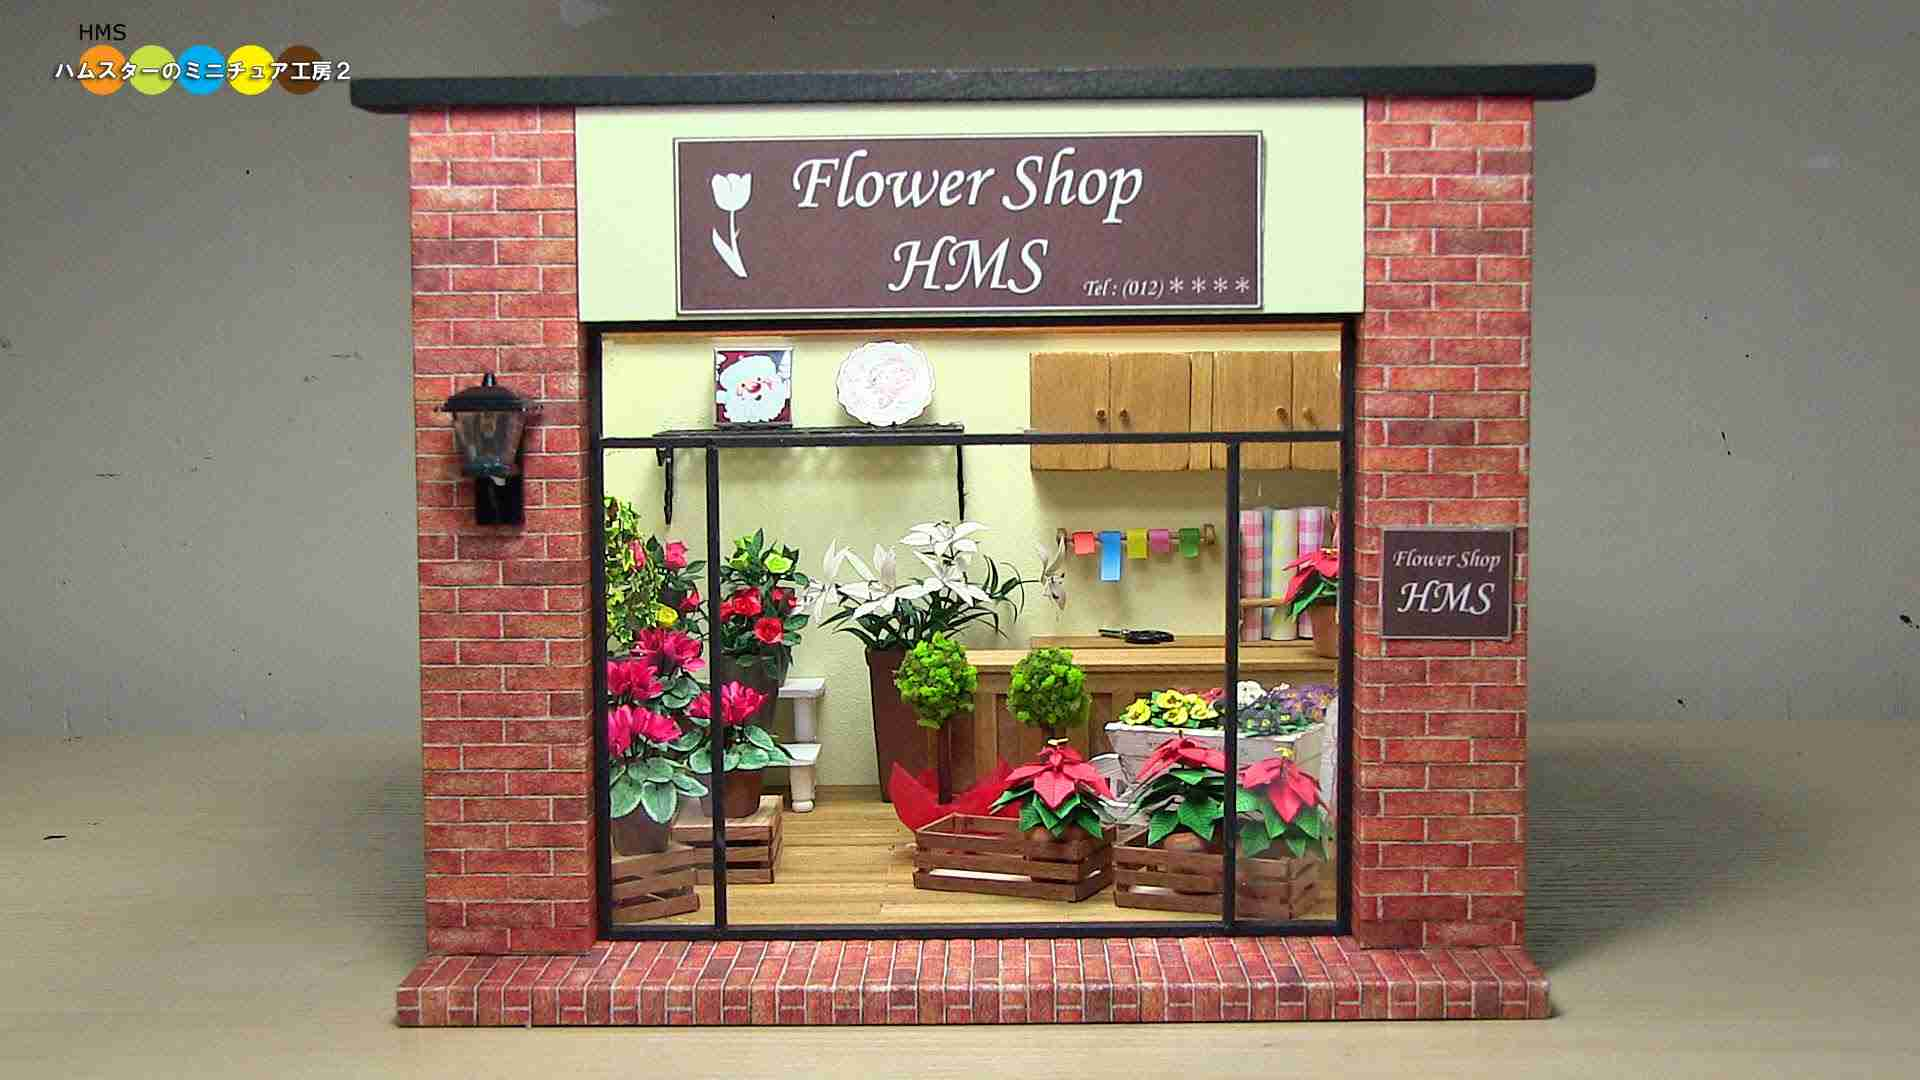 HMS2 Miniature Dollhouse - Flower Shop ミニチュアお花屋さん作り - YouTube